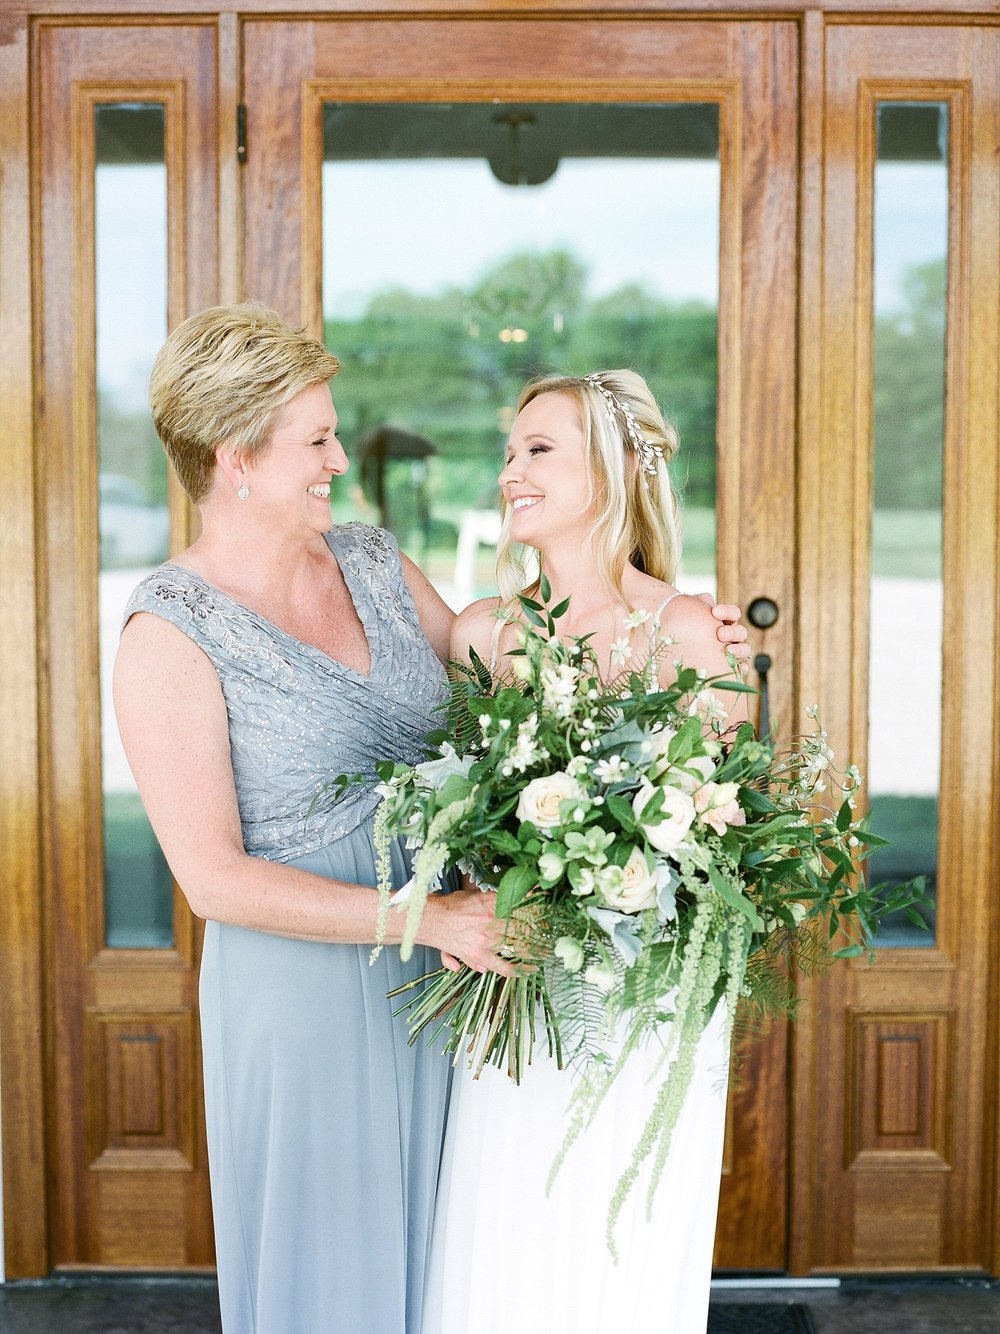 Textural Organic Wedding in All White Venue by Kelsi Kliethermes Wedding Photographer - Missouri, Midwest, and Destinations_0135.jpg